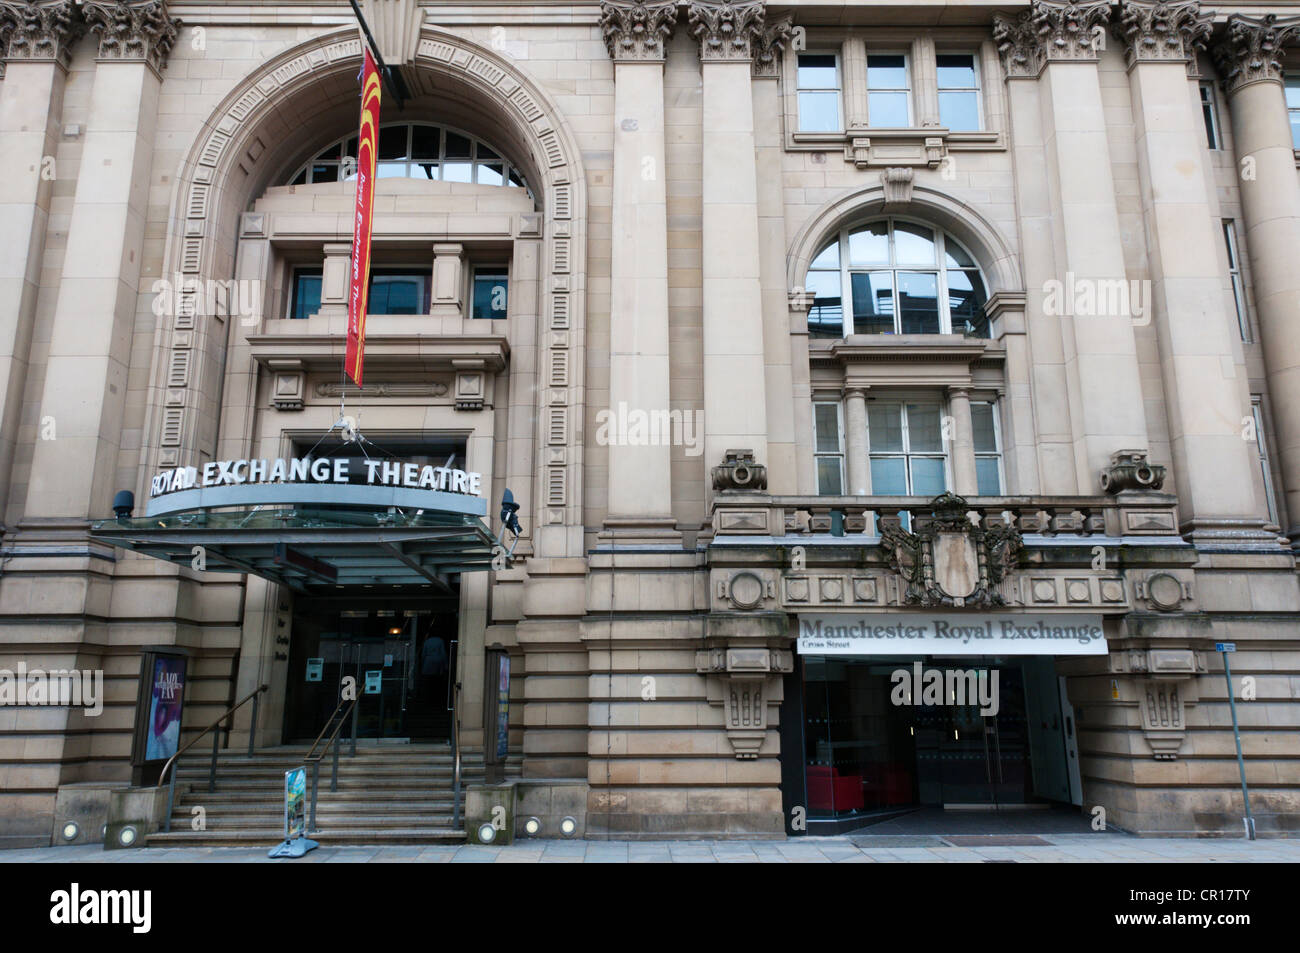 Manchester Royal Exchange Theatre. - Stock Image